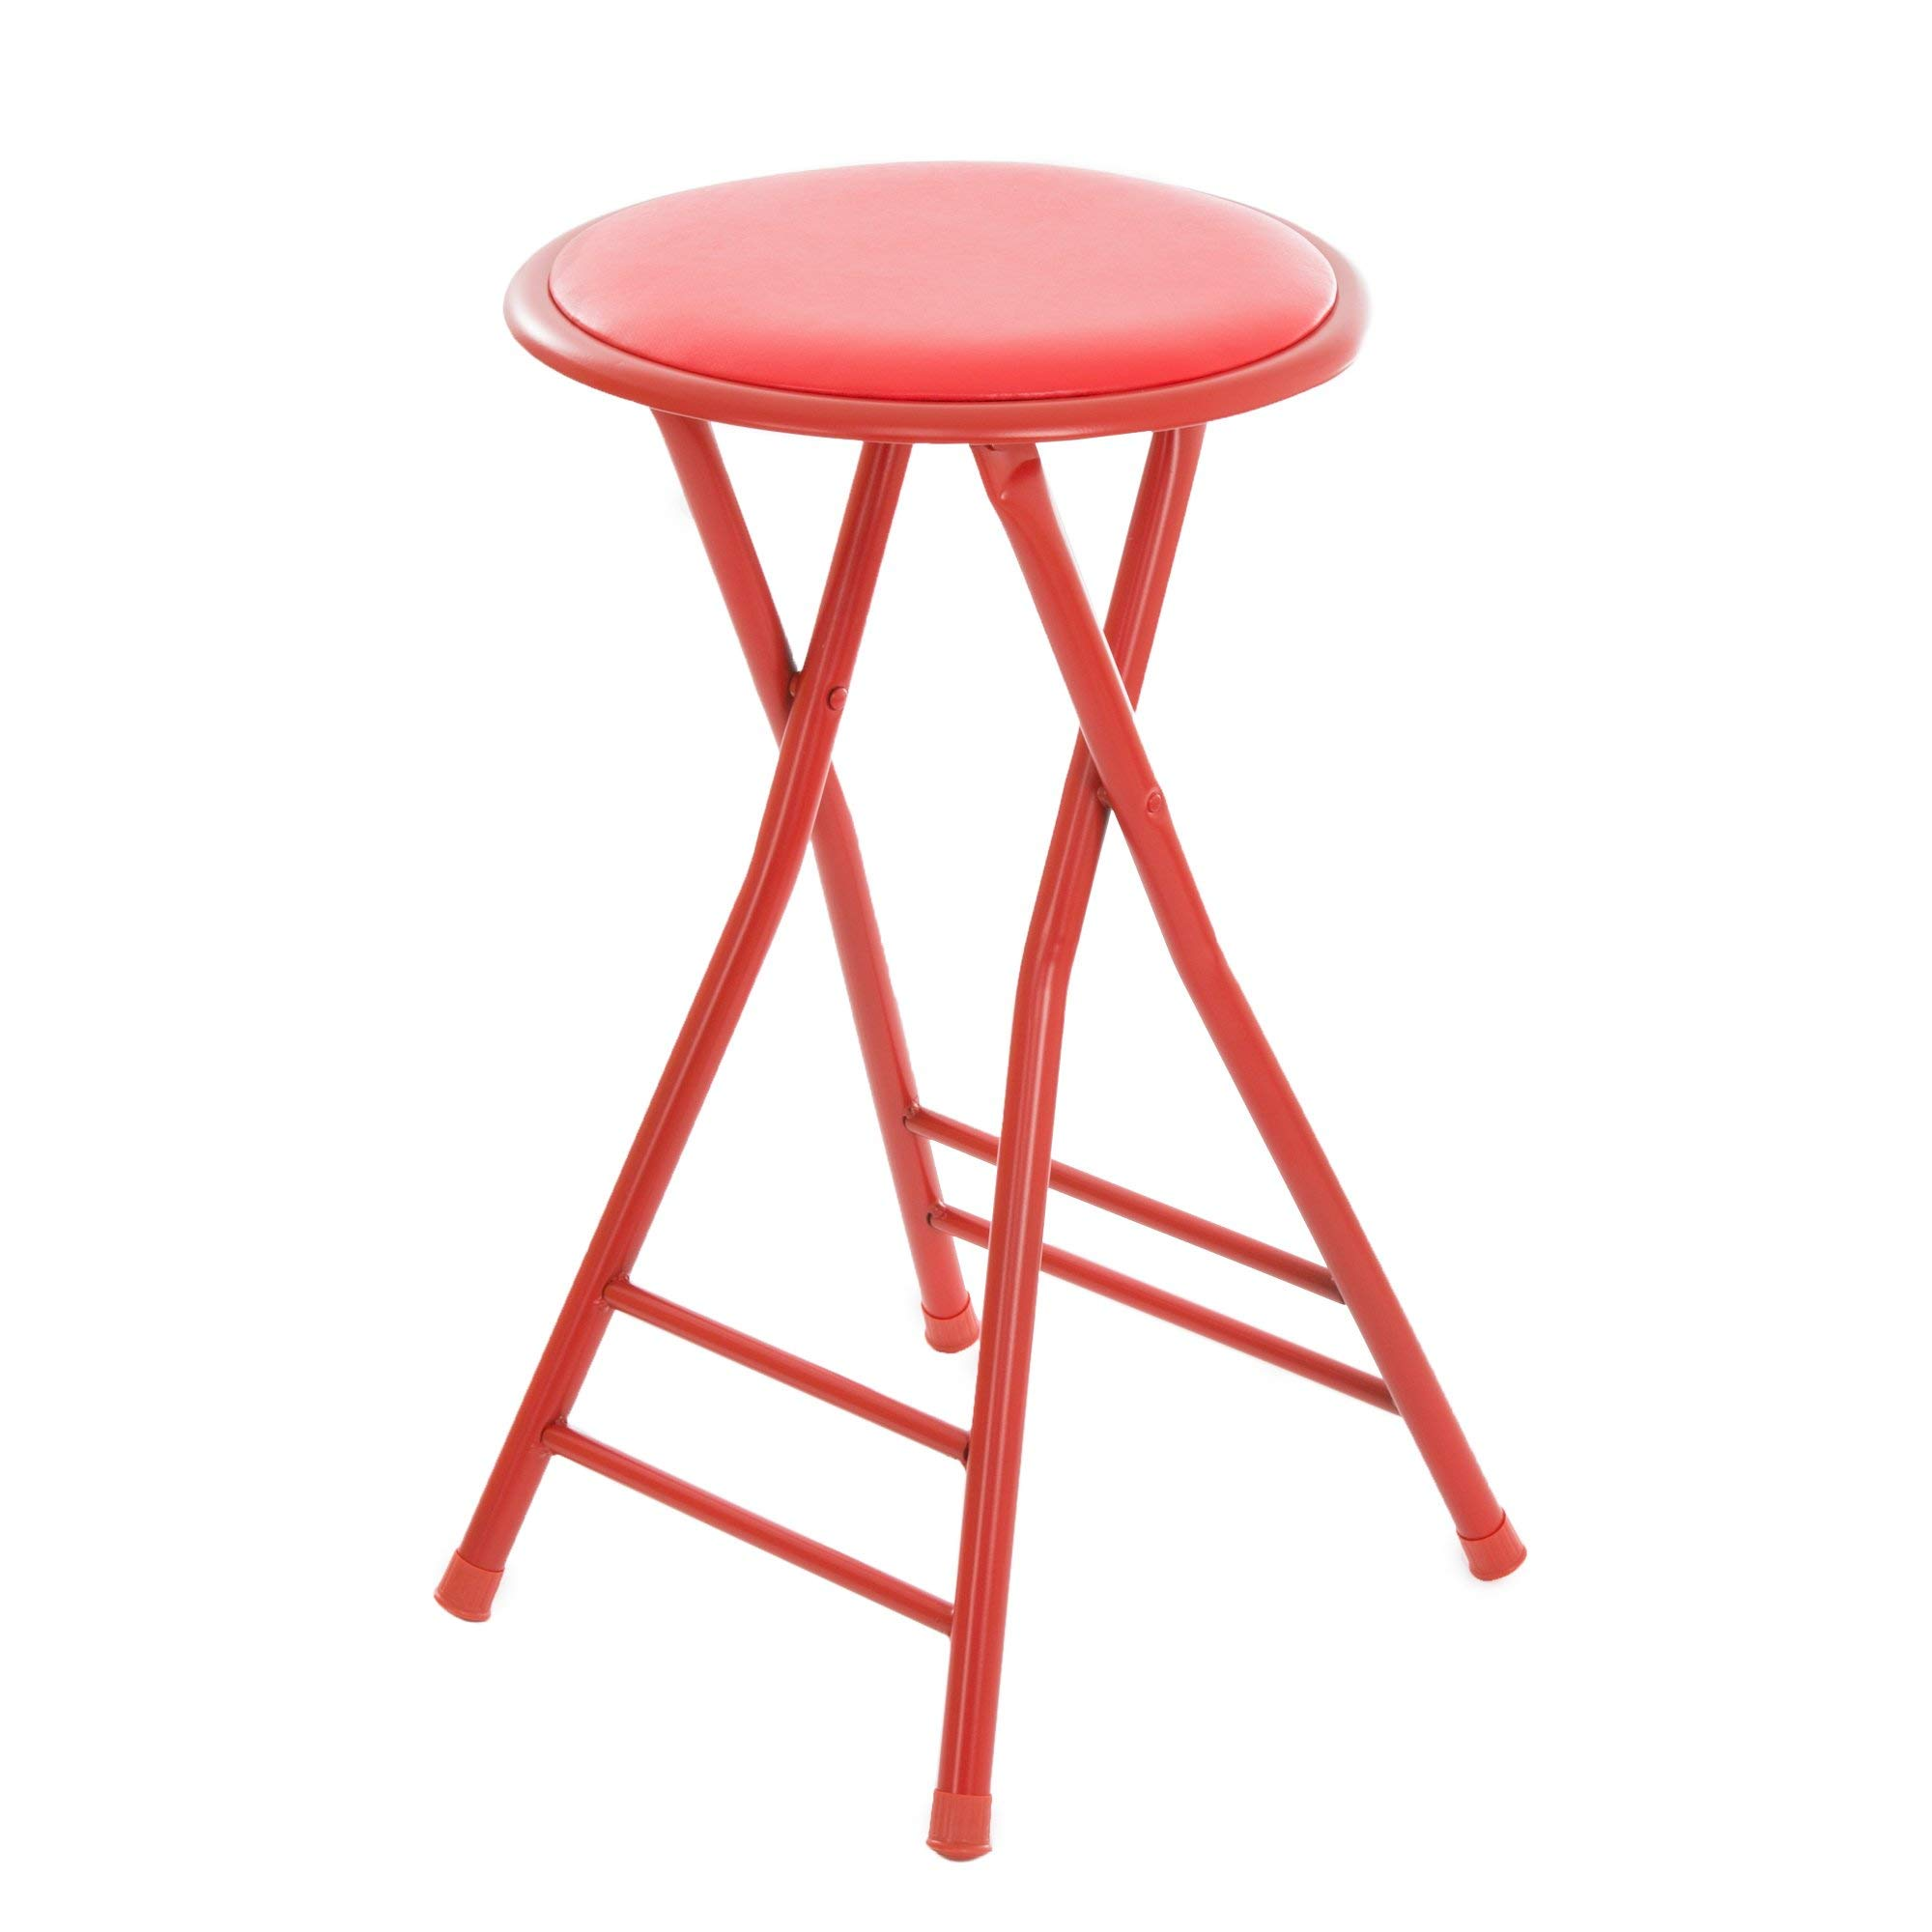 Red Folding Stool with Handle Heavy Duty Folded Stool Chair Cushion Padded Seat Indoor Outdoor Portable Sitting Stool for Home Picnic Office Household Lightweight Durable Quality Metal, Plastic by MISC